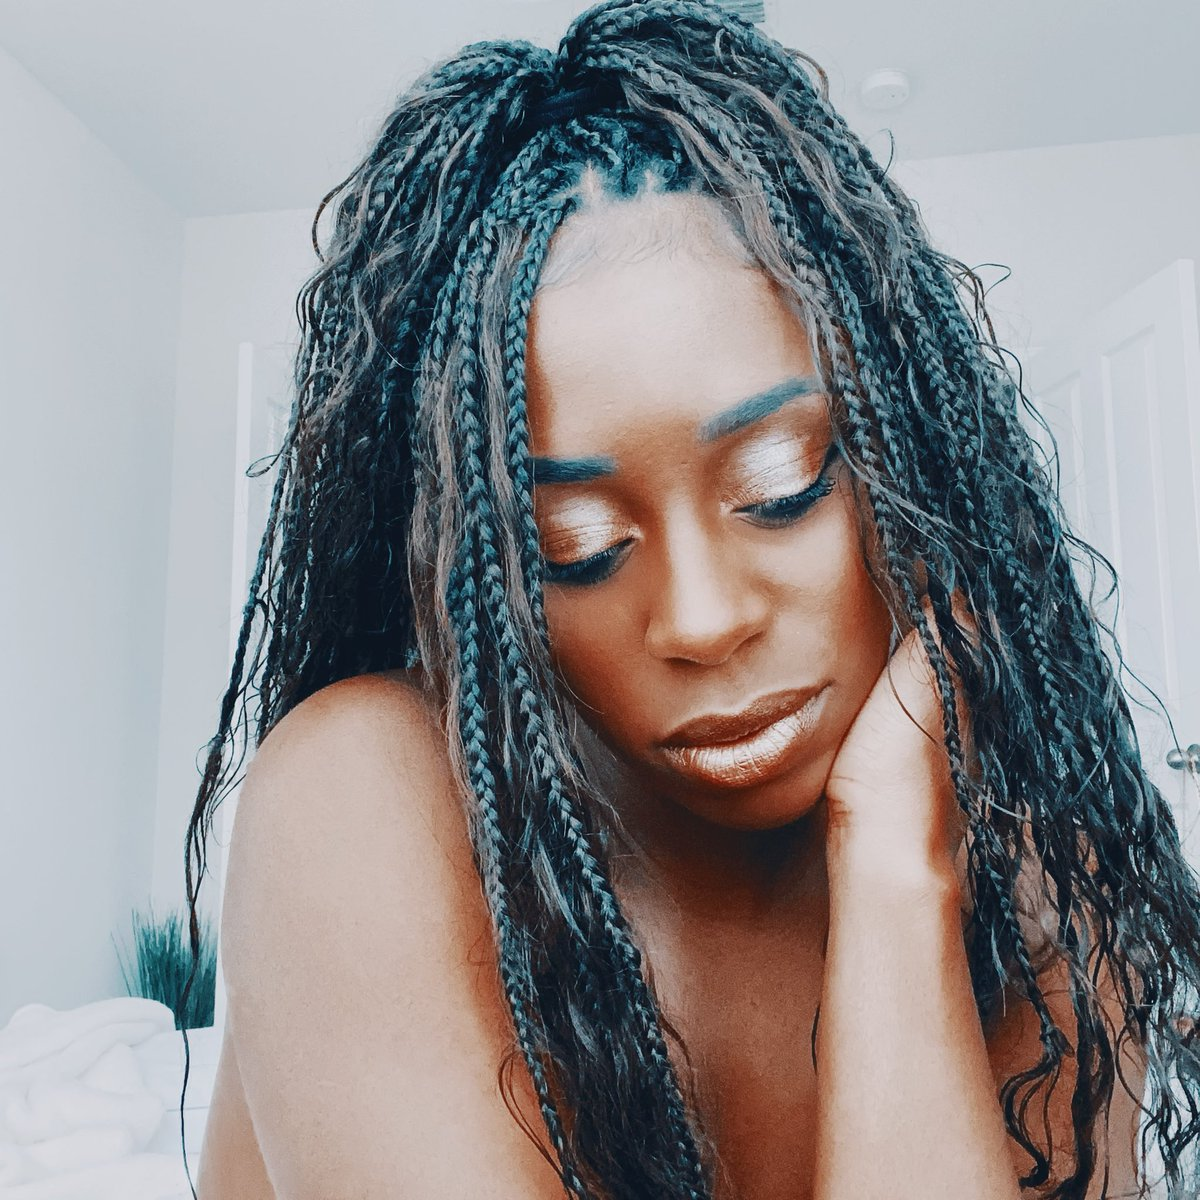 Replying to @NaomiWWE: Just thinking...about what's next